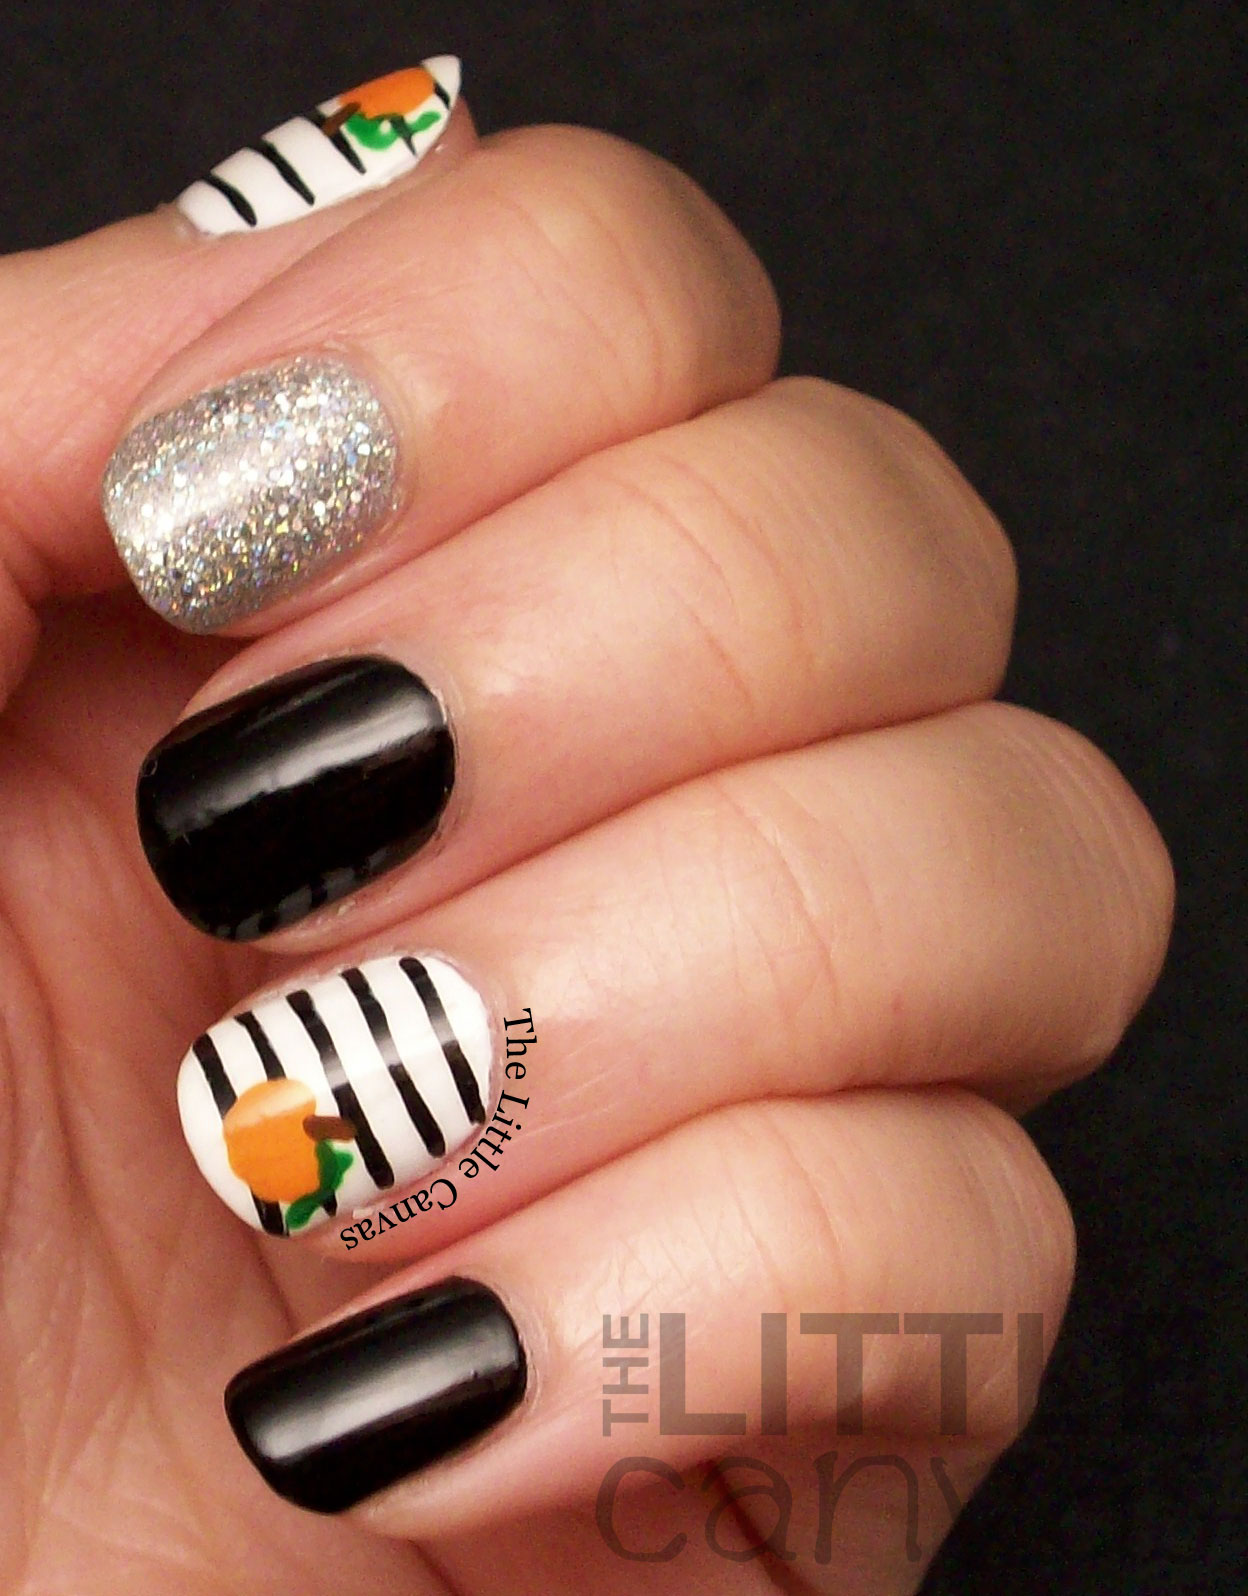 Cool Winter 2014 Nail Polish Trends Thick Nail Polish For Weak Nails Square Nails Art Black Nail Polish 2014 Colors Old Nail Fungus Cause PurpleEasy And Quick Nail Art The Little Canvas: Little Itty Bitty Pumpkin Nail Art